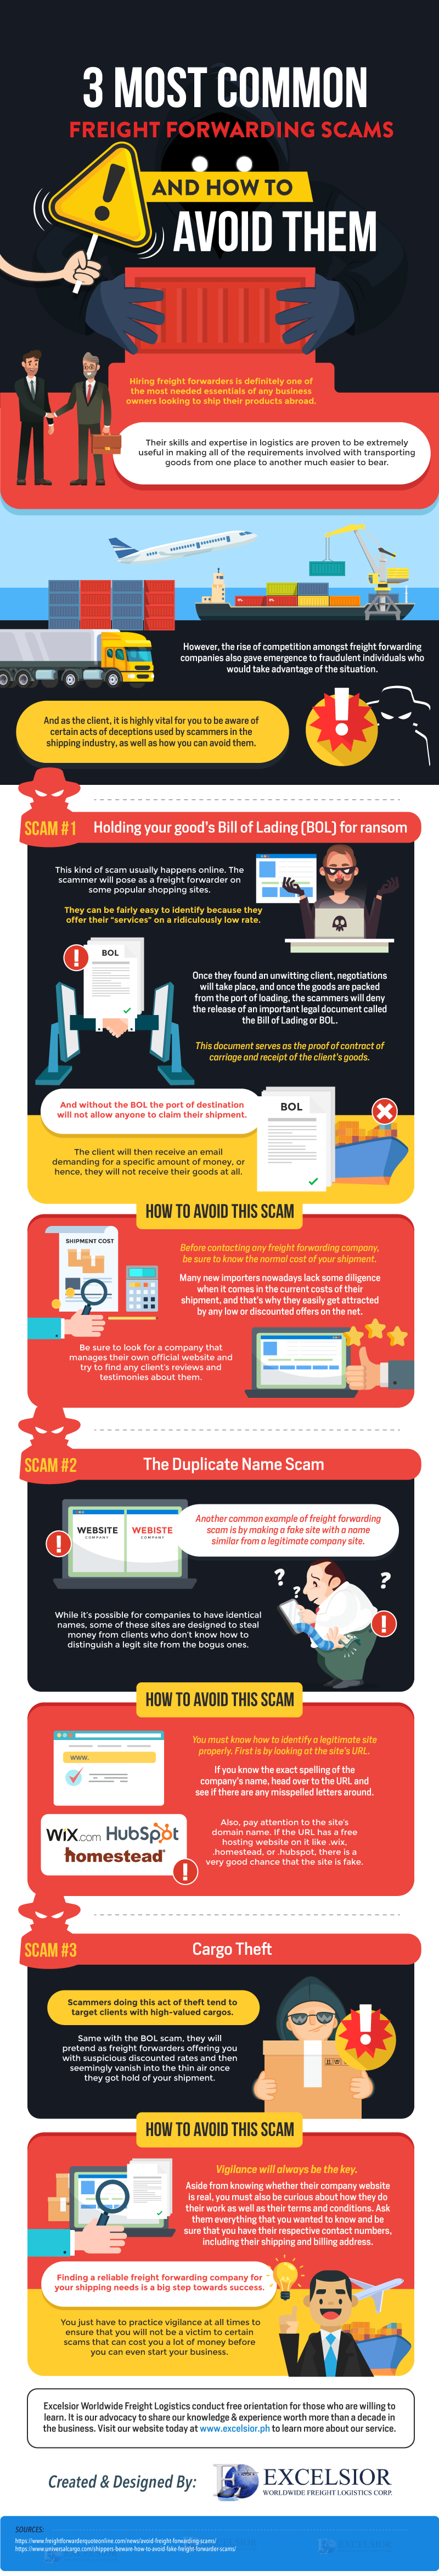 3 Most Common Freight Forwarding Scams